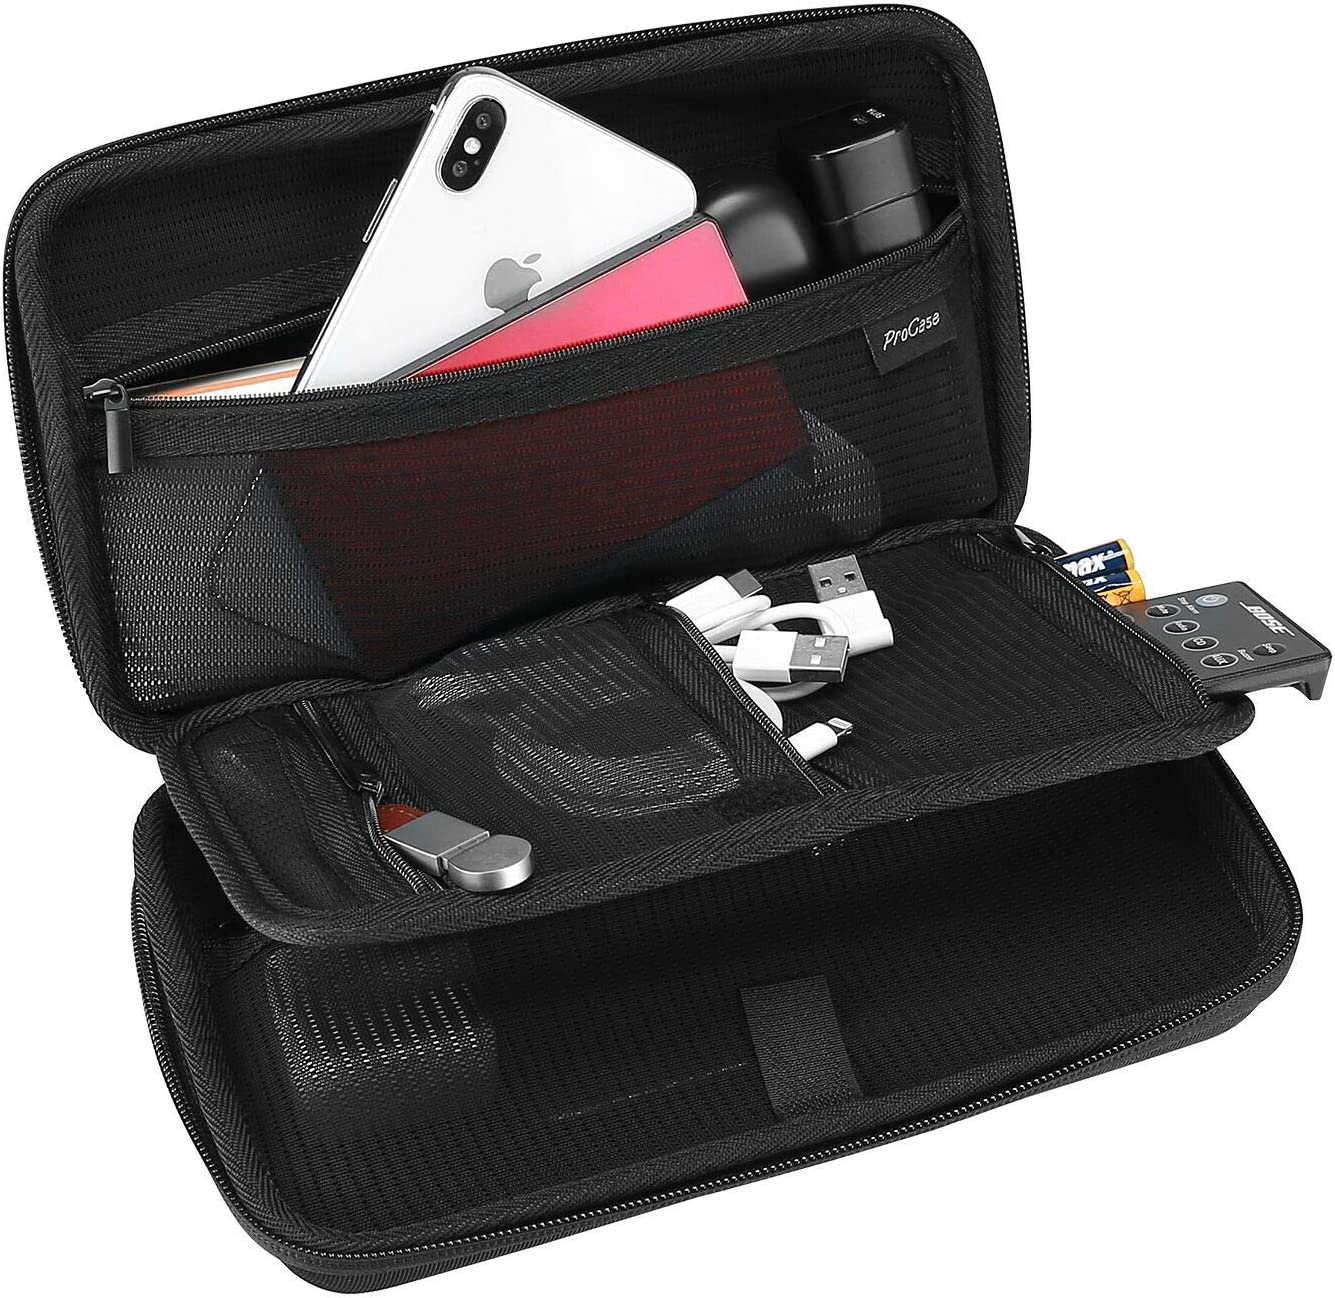 ProCase Hard Travel Tech Organizer Case Bag for Electronics Accessories Charger Cord Portable External Hard Drive USB Cables Power Bank SD Memory Cards Earphone Flash Drive